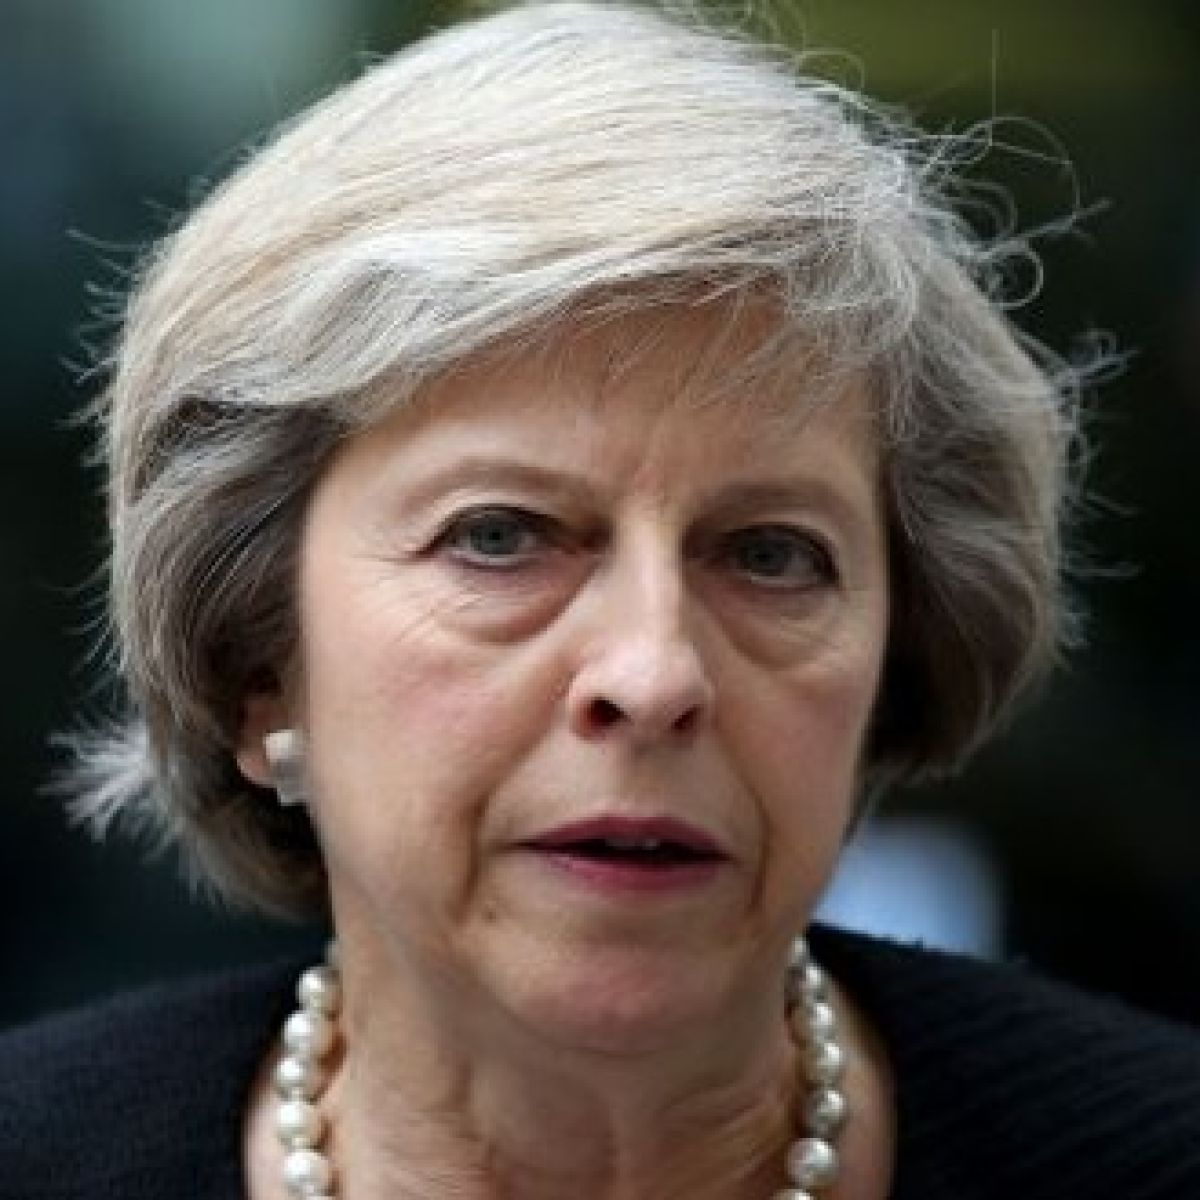 e276c2547cf Theresa May's task has echoes of challenge faced by Michael Collins